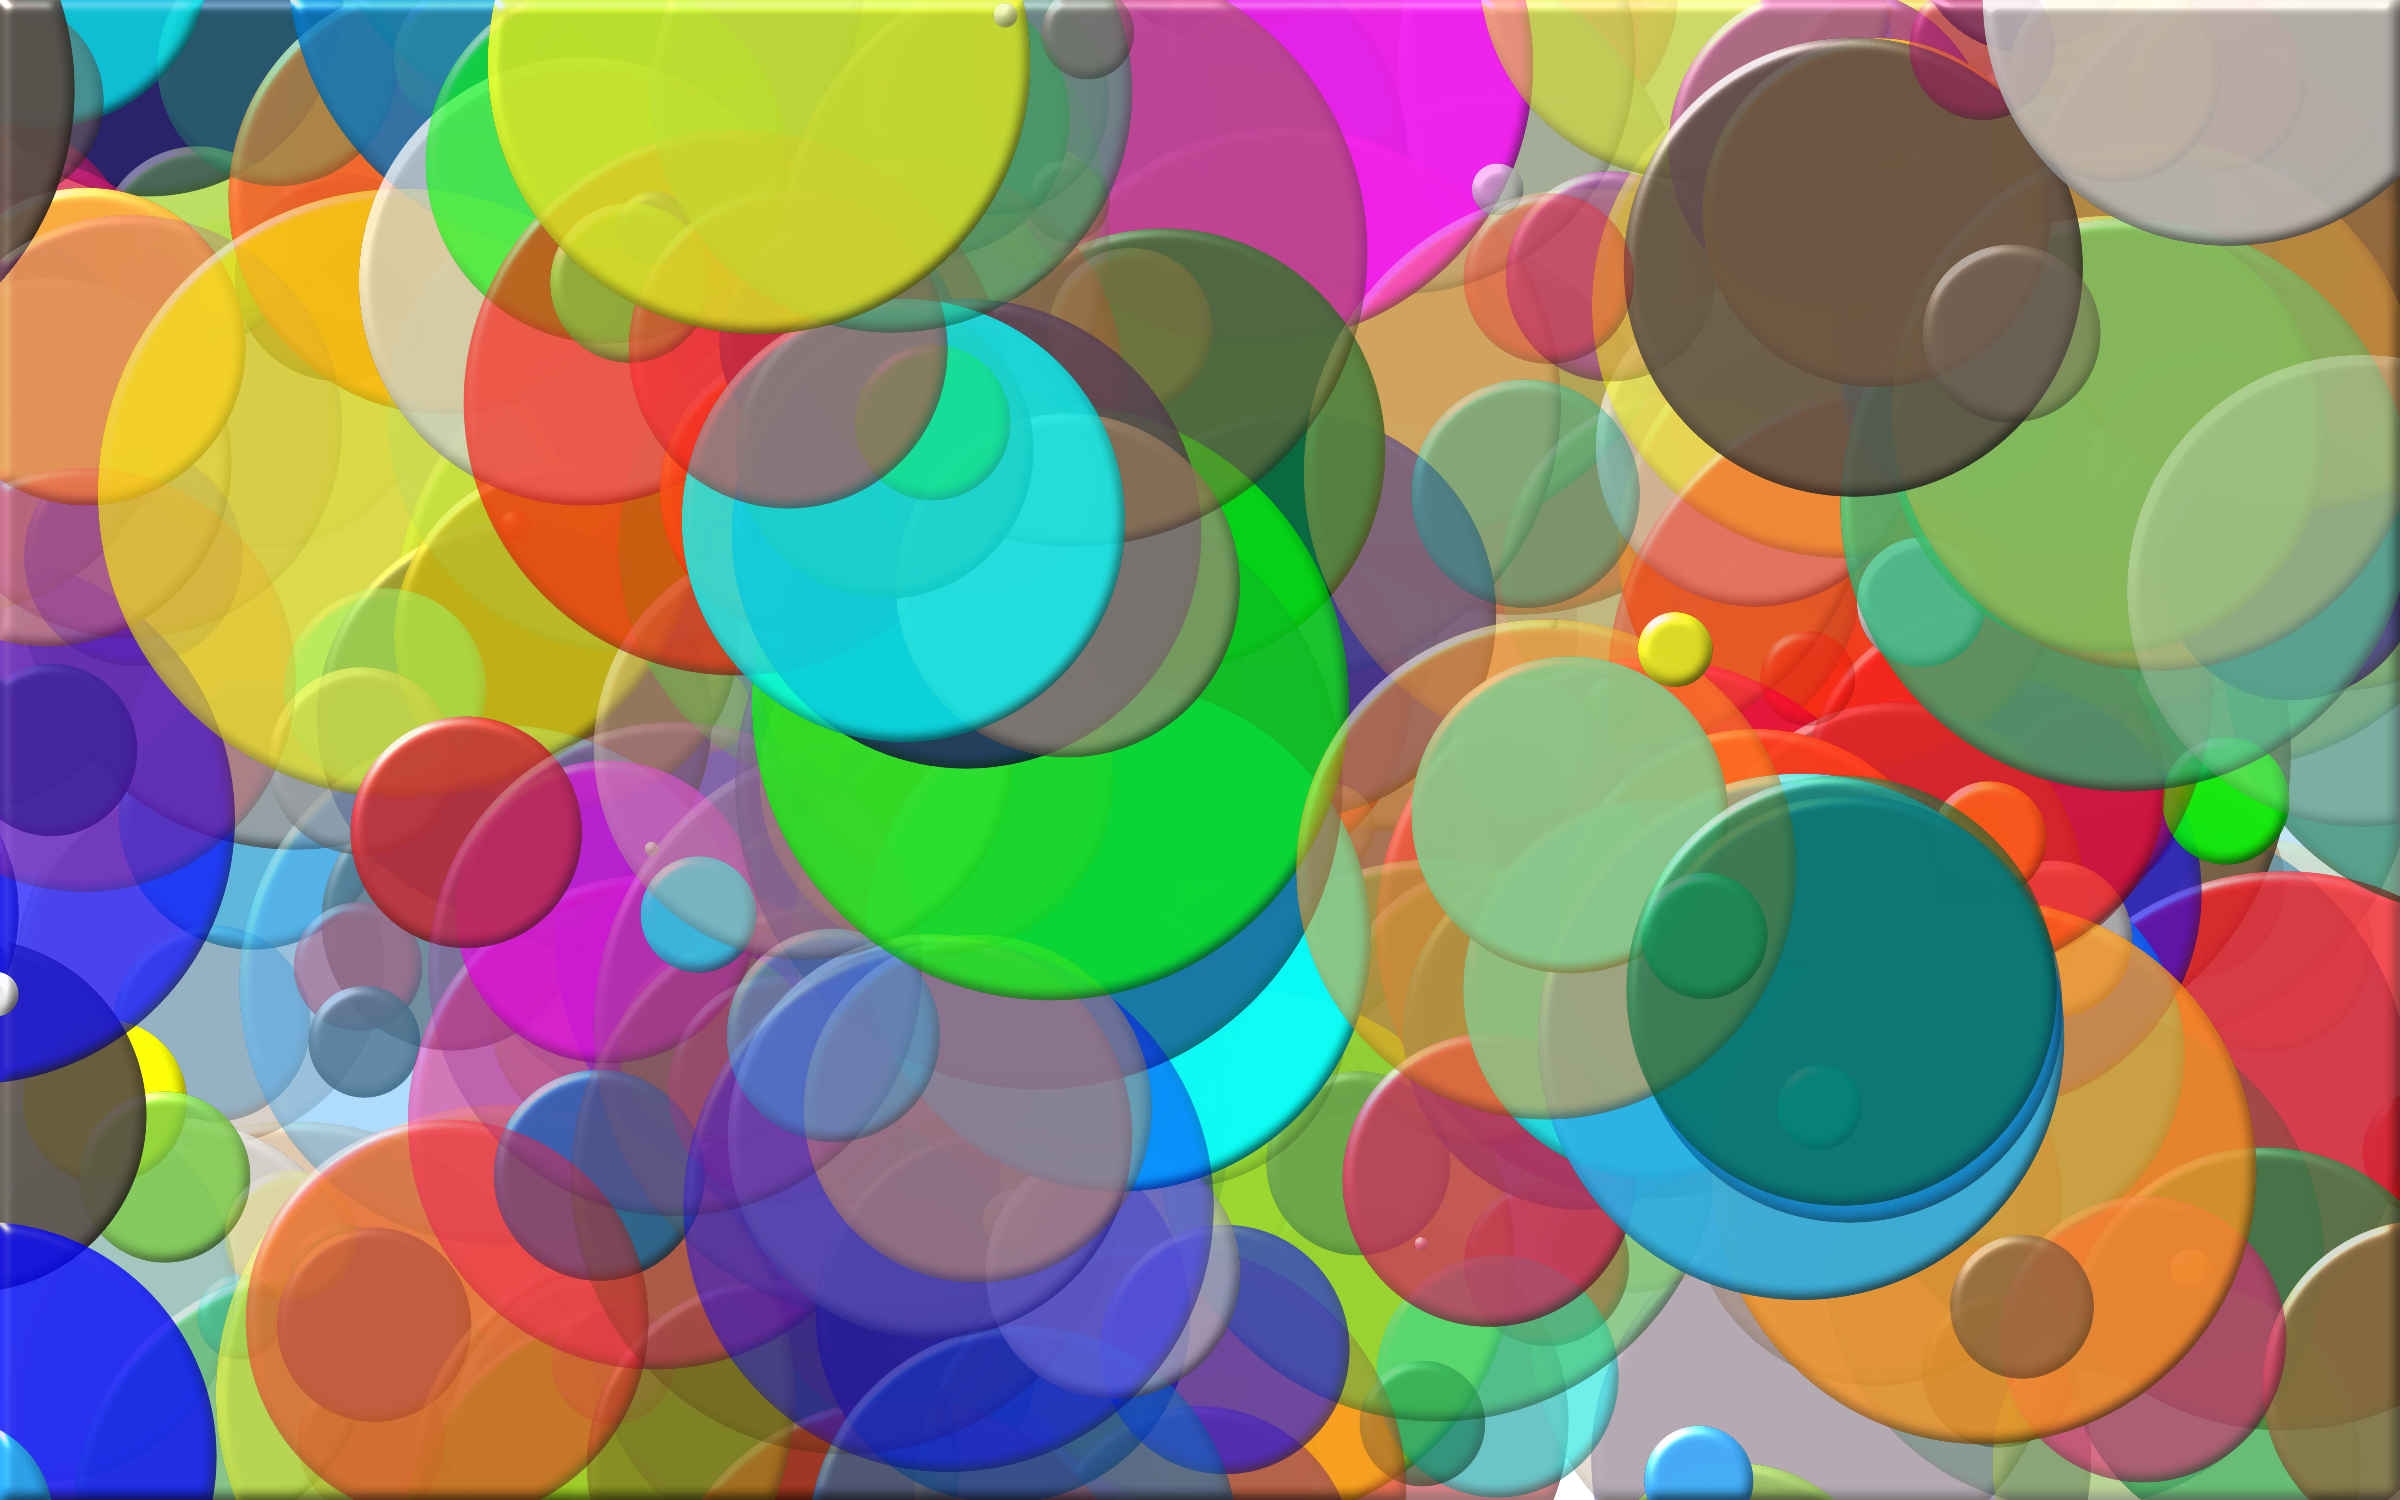 Overlapping Circles Background 2 by GDJ